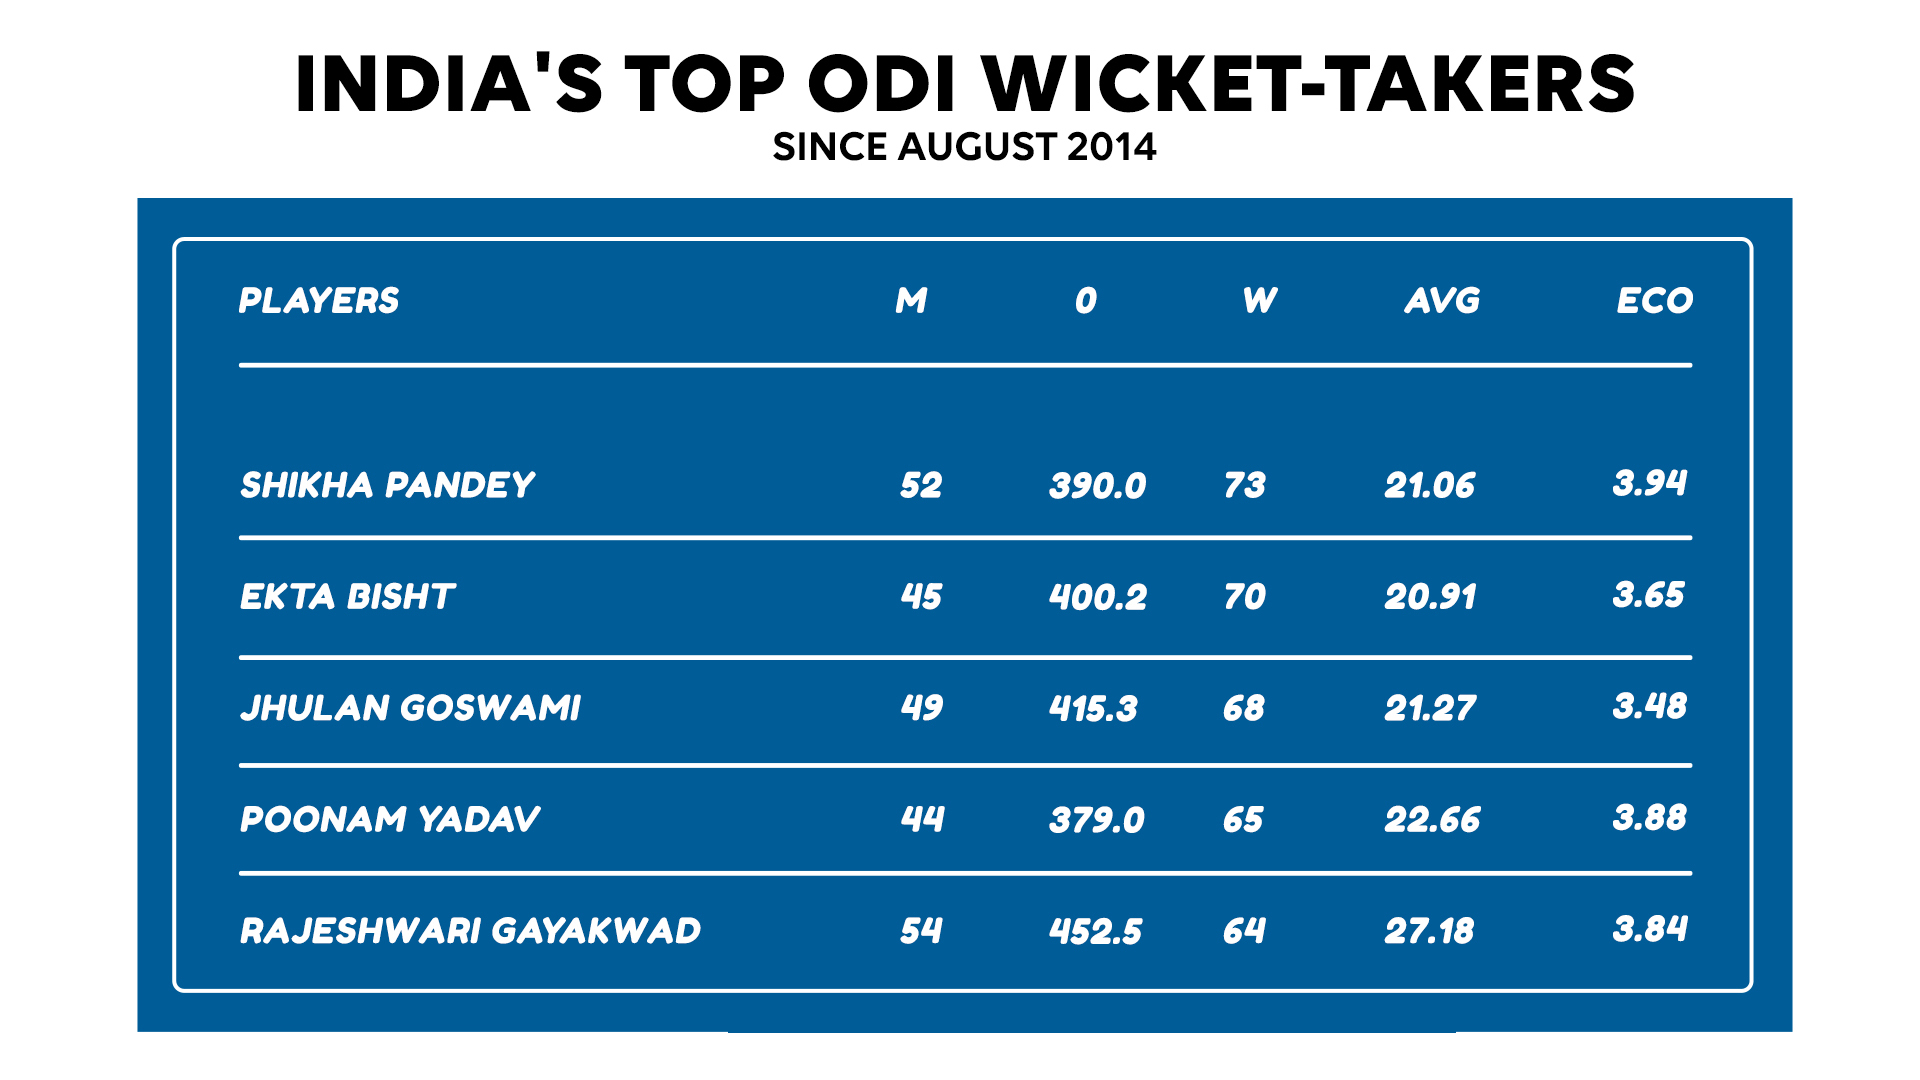 India's top wicket-takers in ODIs